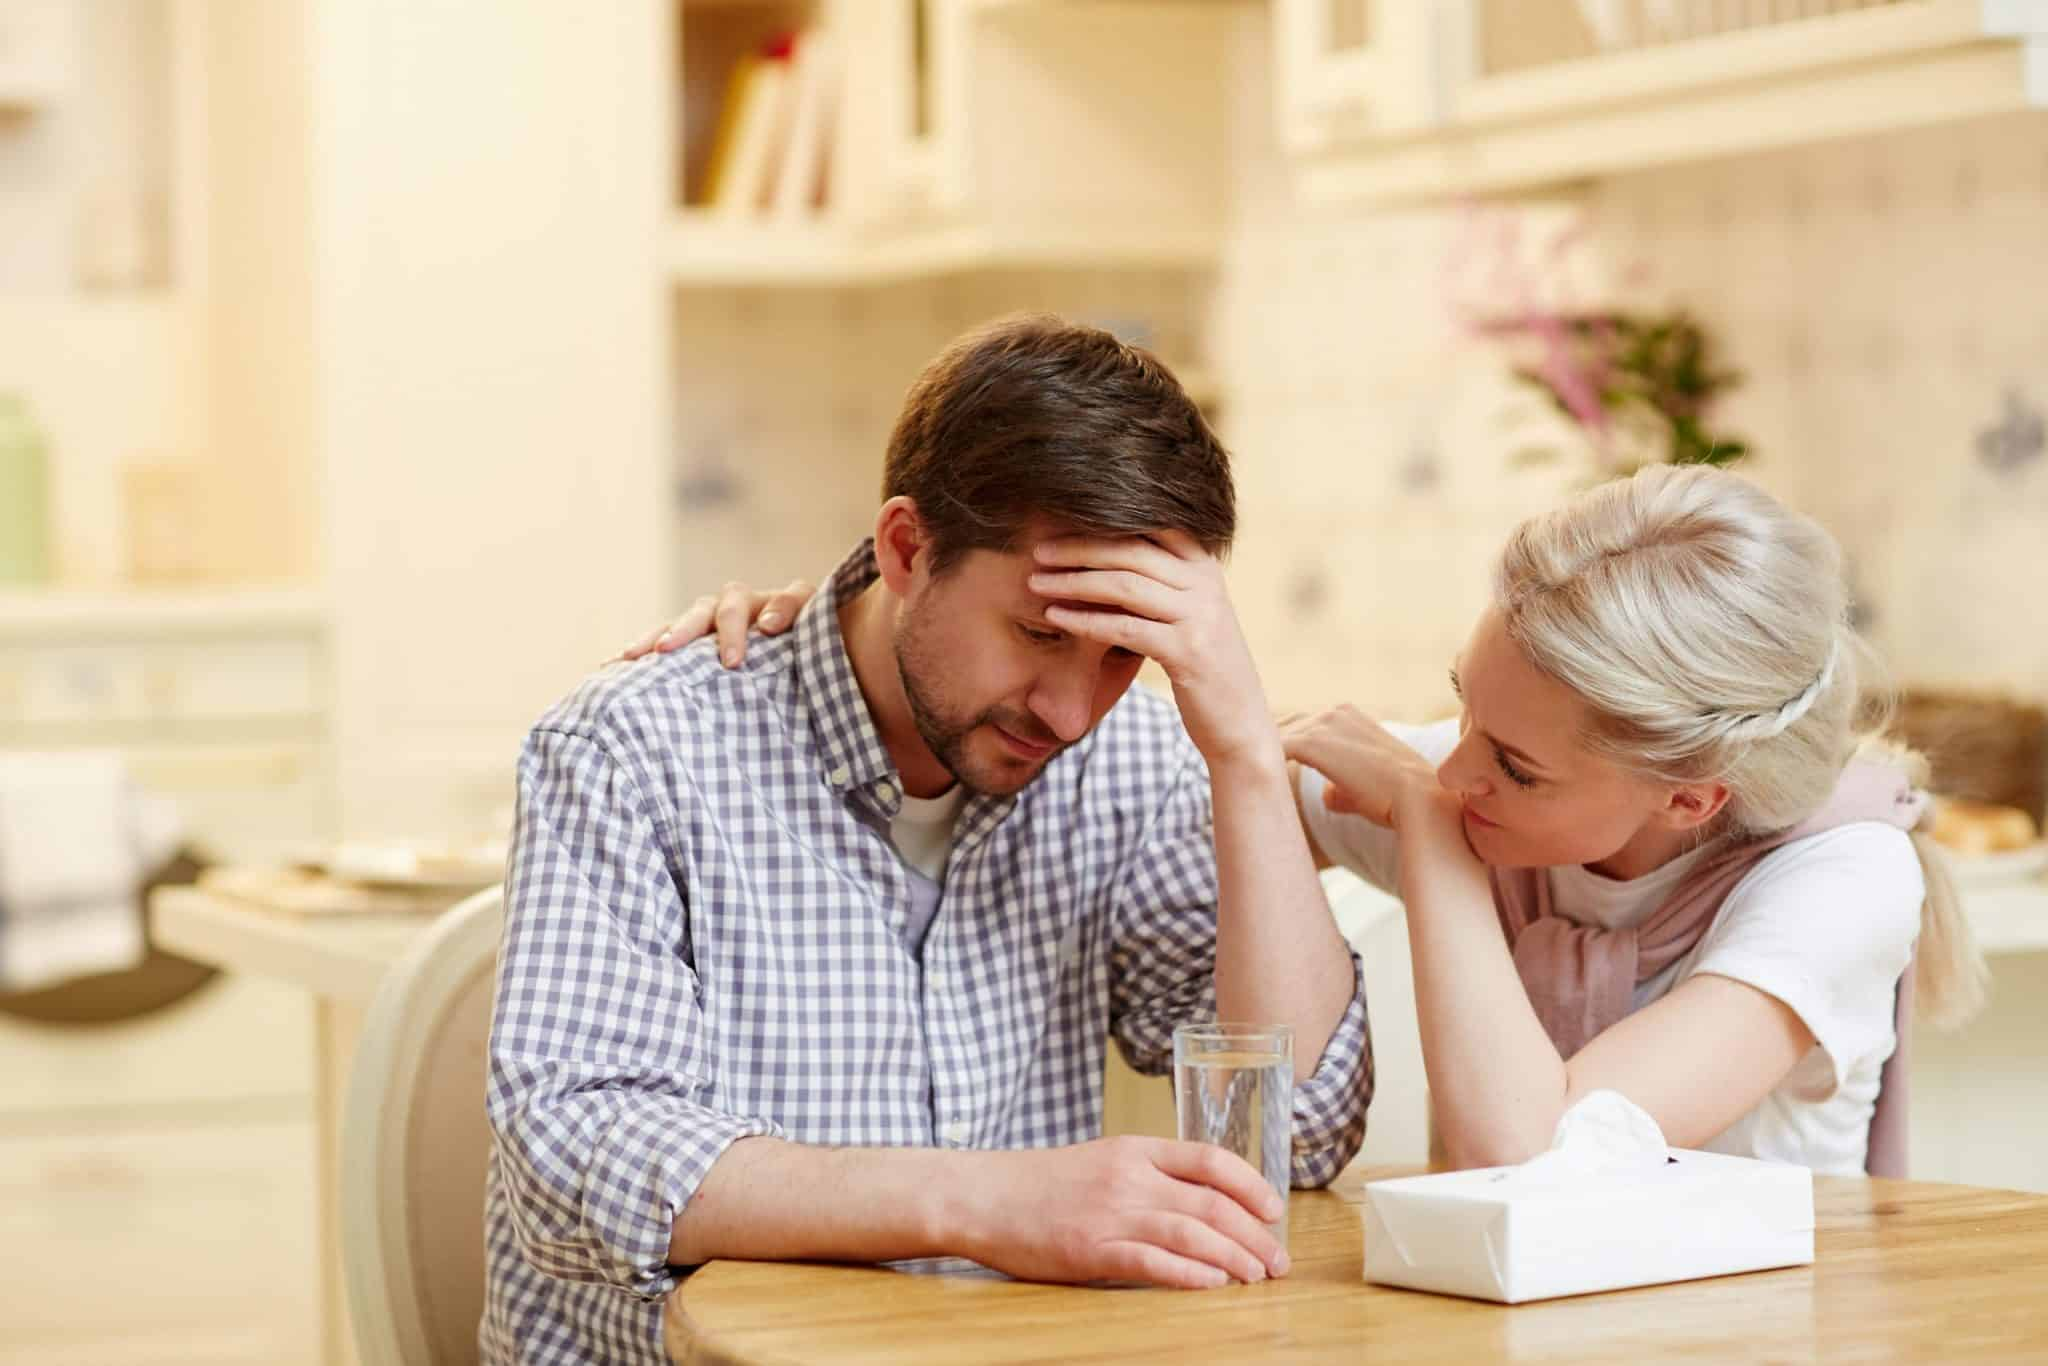 Woman tending to her depressed spouse